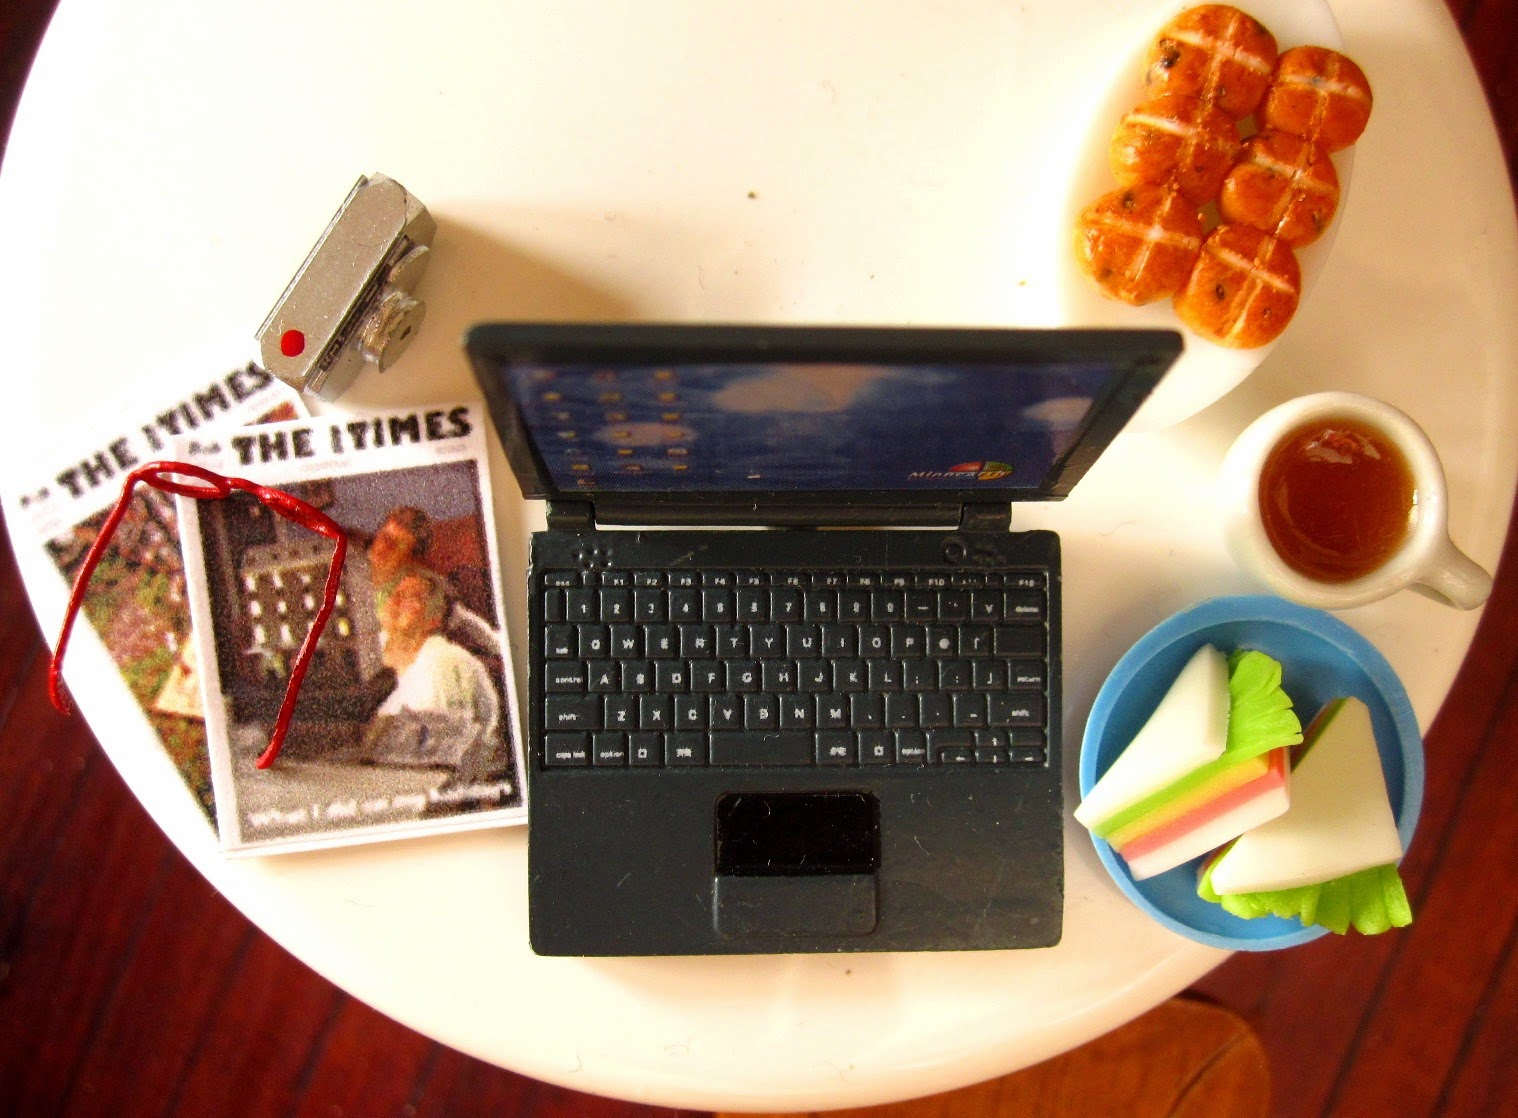 Modern dolls' house miniature round table with a laptop computer, digital camera, reading glasses, back issues of The tiny Times, sandwiches, mug of tea and hot cross buns on it.